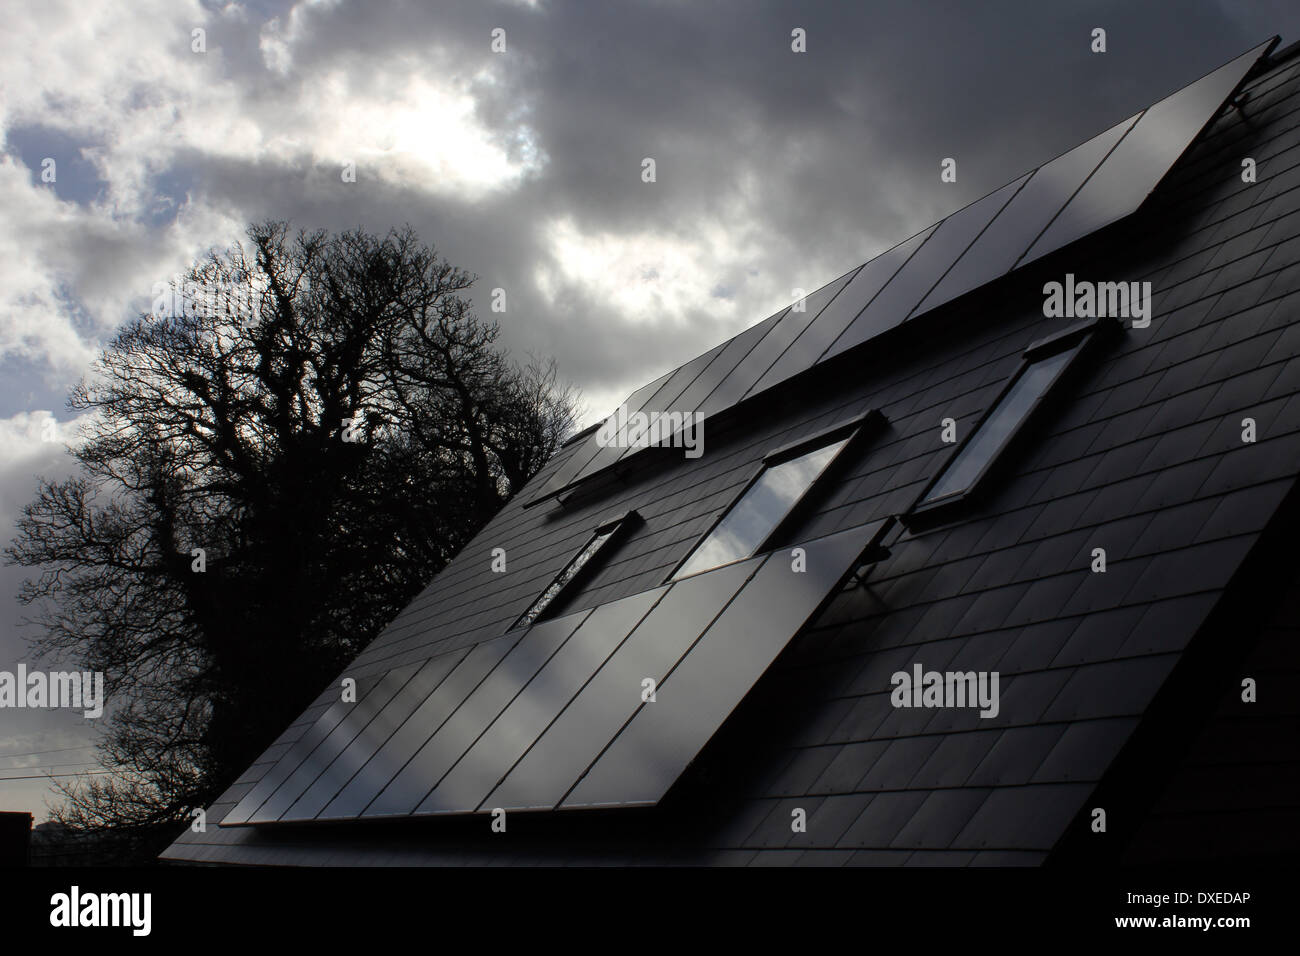 A solar panel is a set of solar photovoltaic modules electrically connected and mounted on a supporting structure. - Stock Image